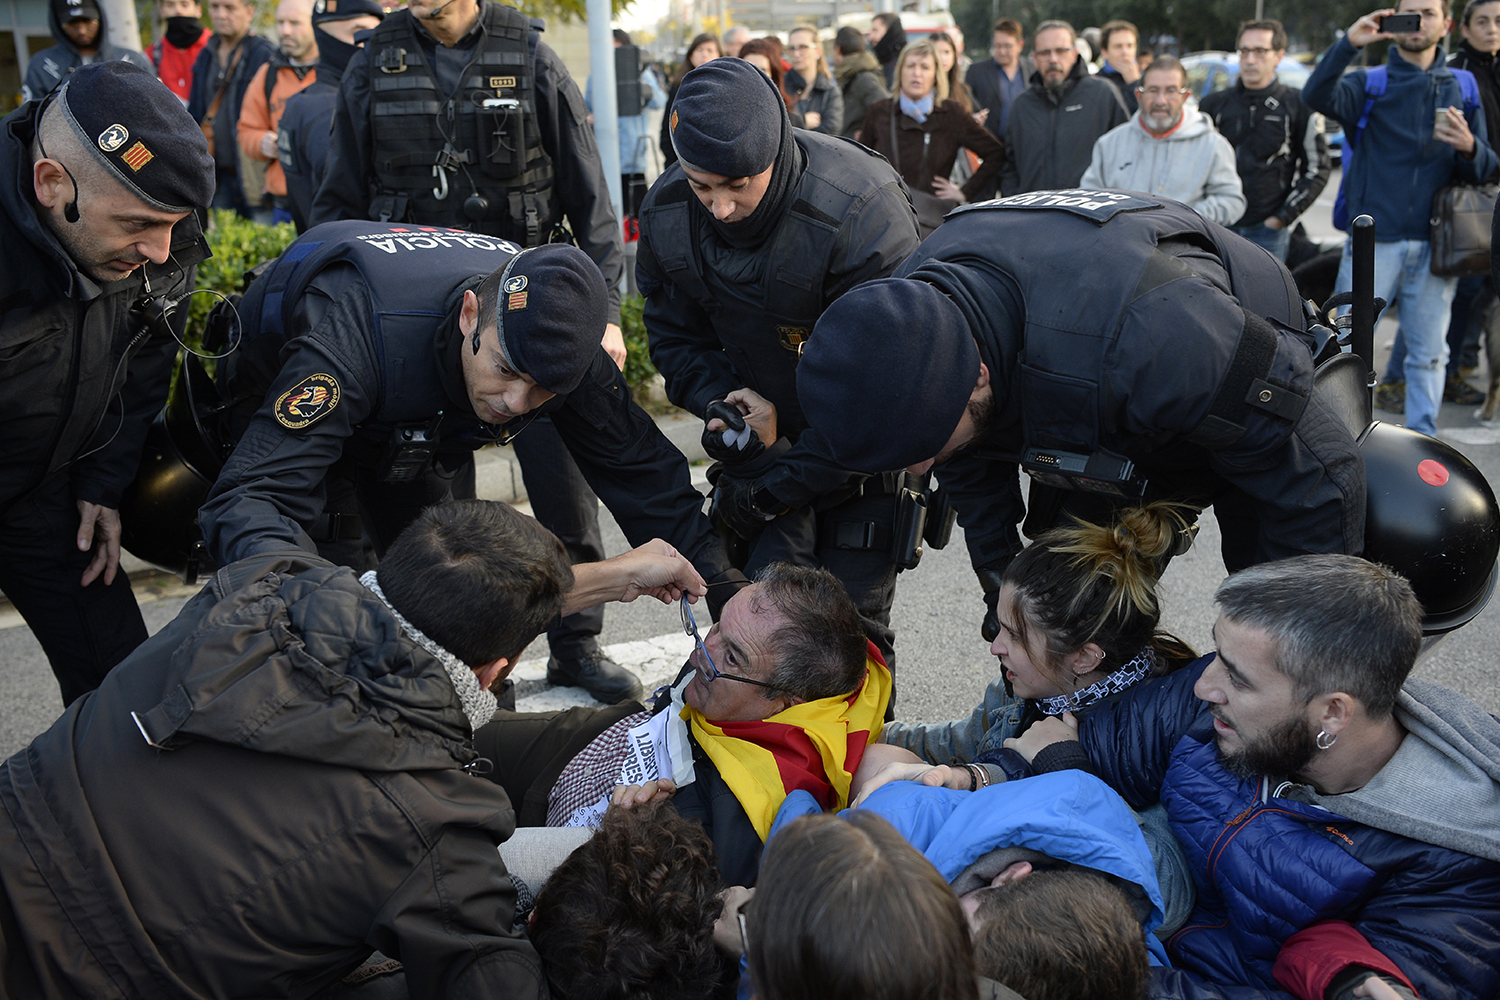 Catalan regional policemen (Mossos d'Esquadra) talk to picketers blocking the street at the Placa Cerda square in Barcelona during a general strike to protest the jailing of eight sacked regional lawmakers on Nov. 8.  Josep Lago/AFP/Getty Images